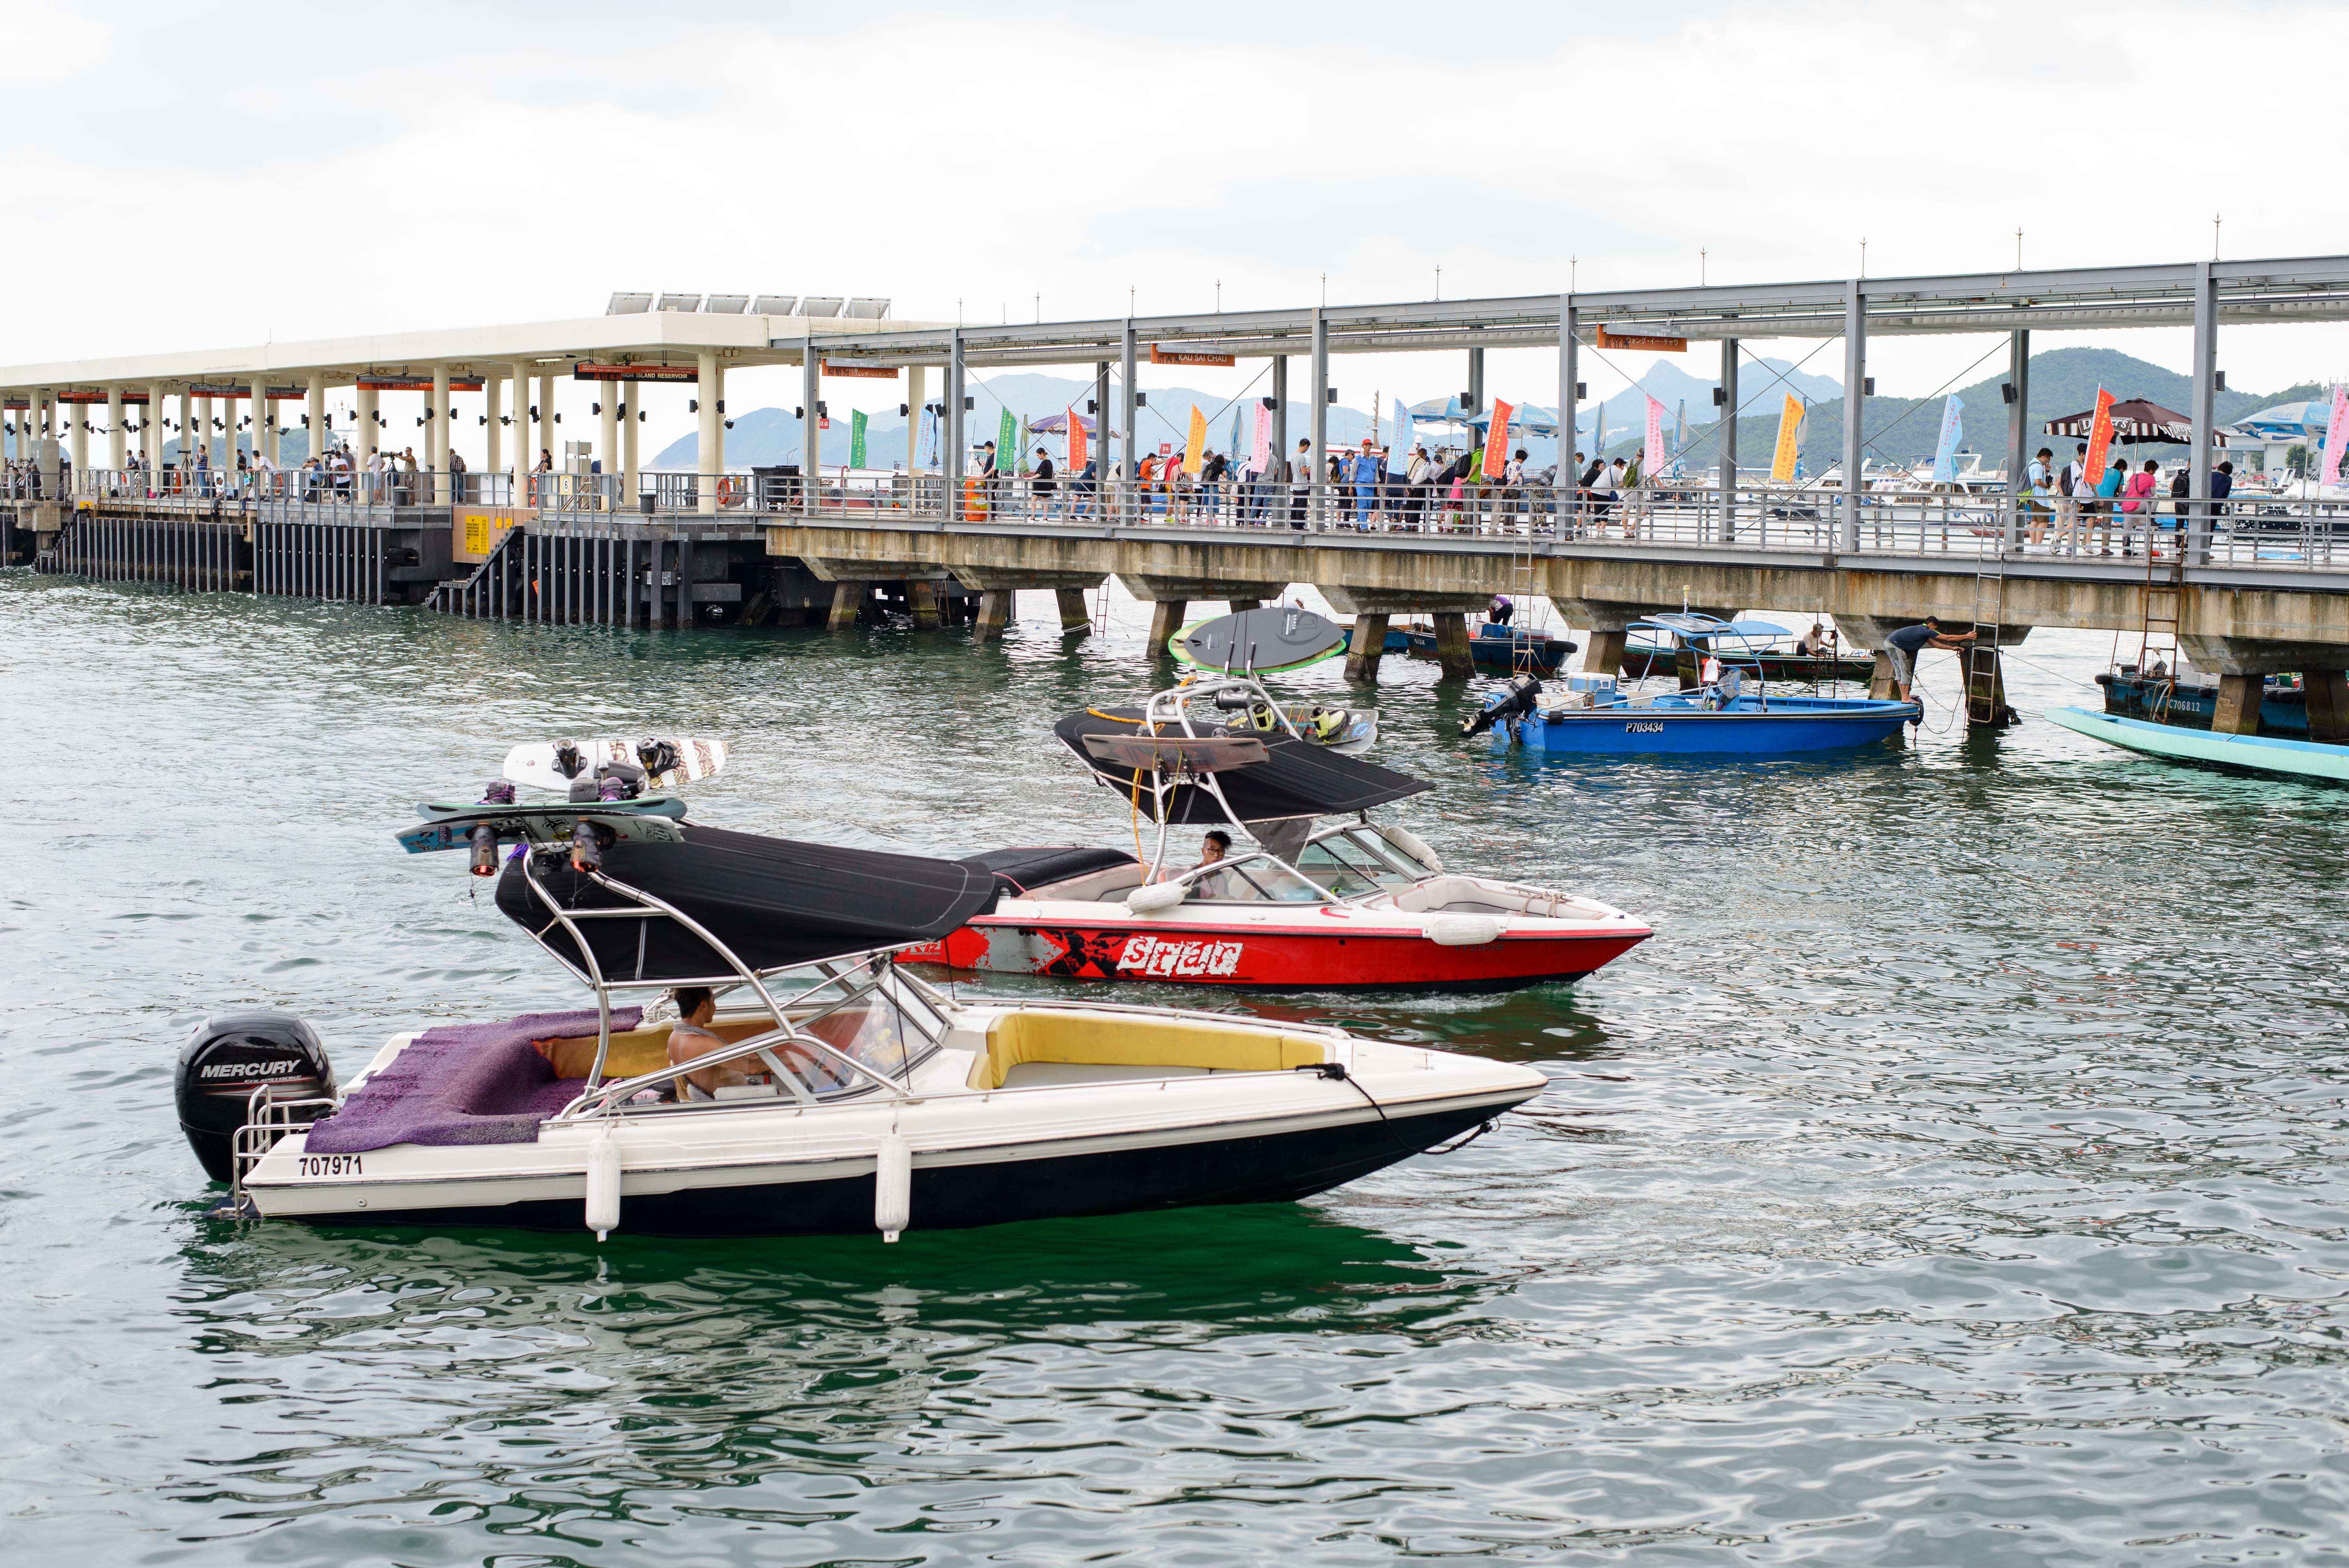 Speedboats lining up for loading of passengers